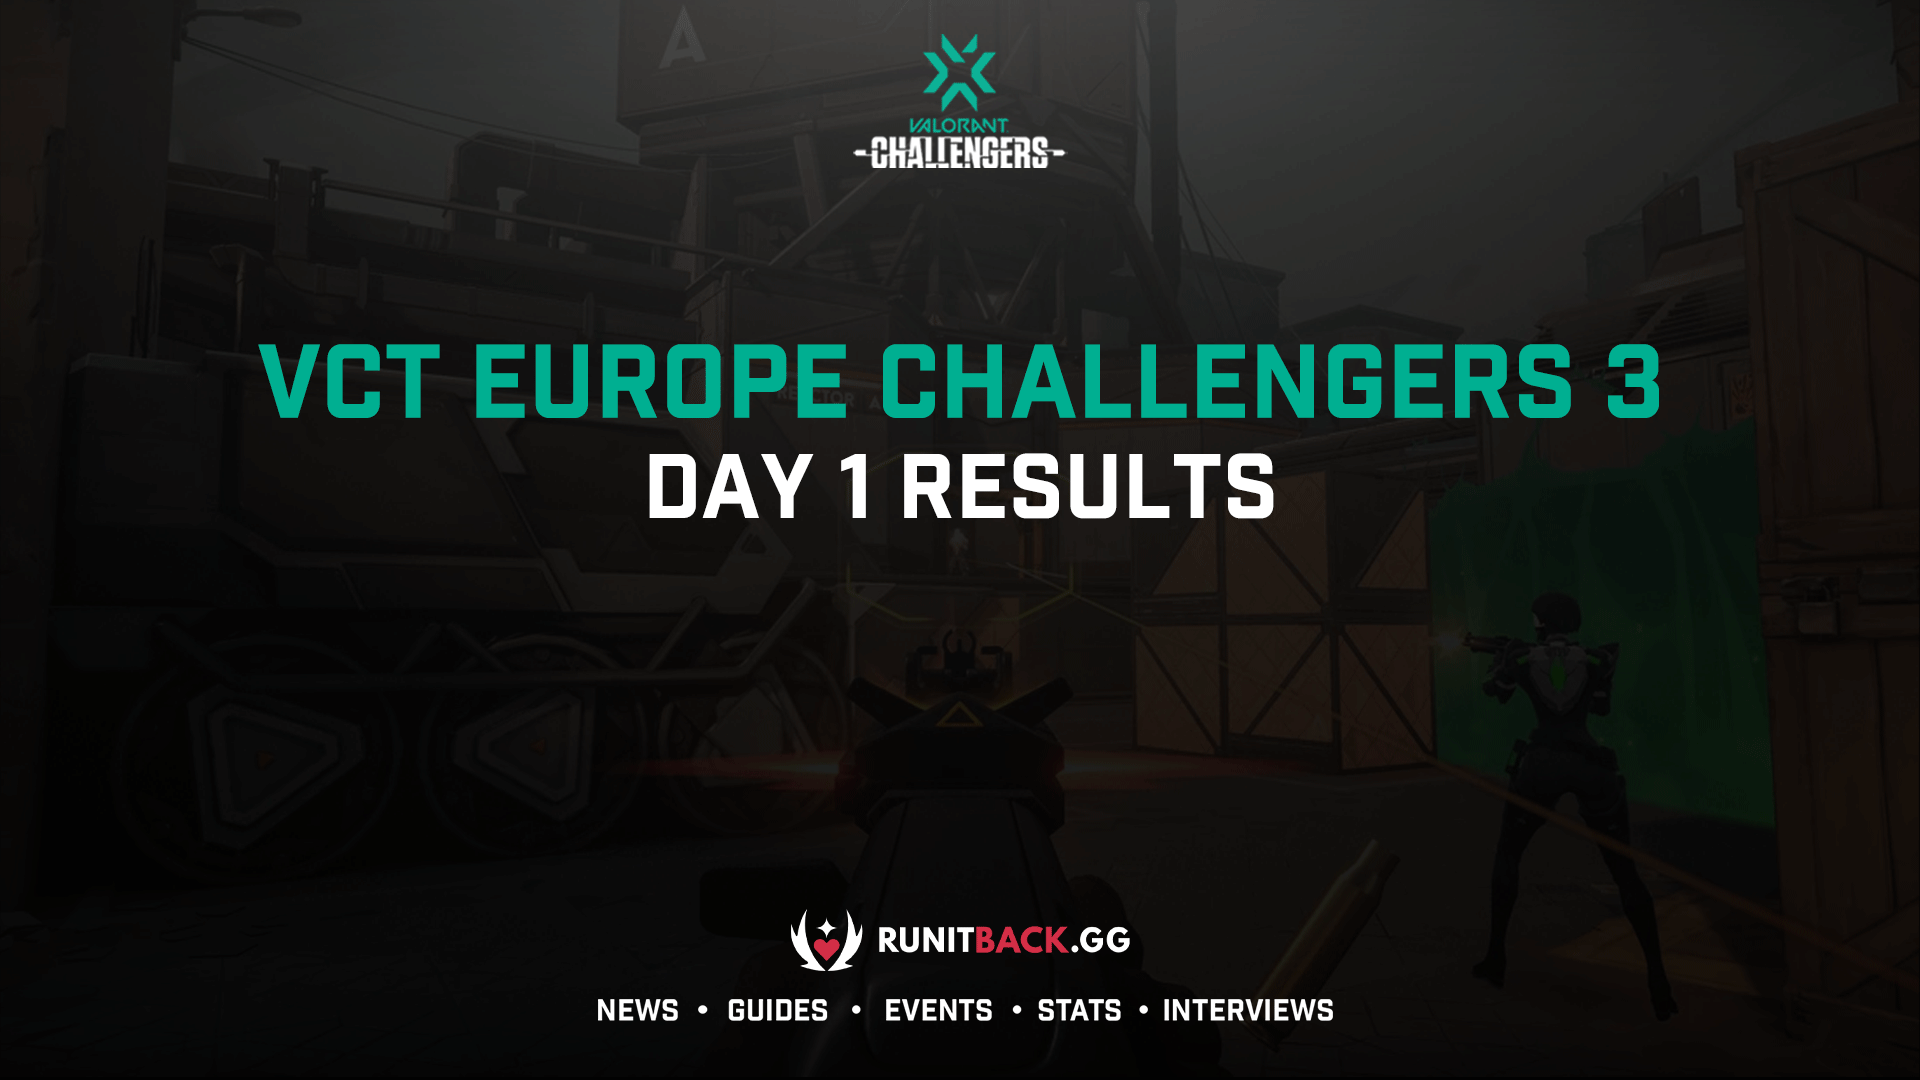 VCT Europe: Challengers 3 Day 1 Results